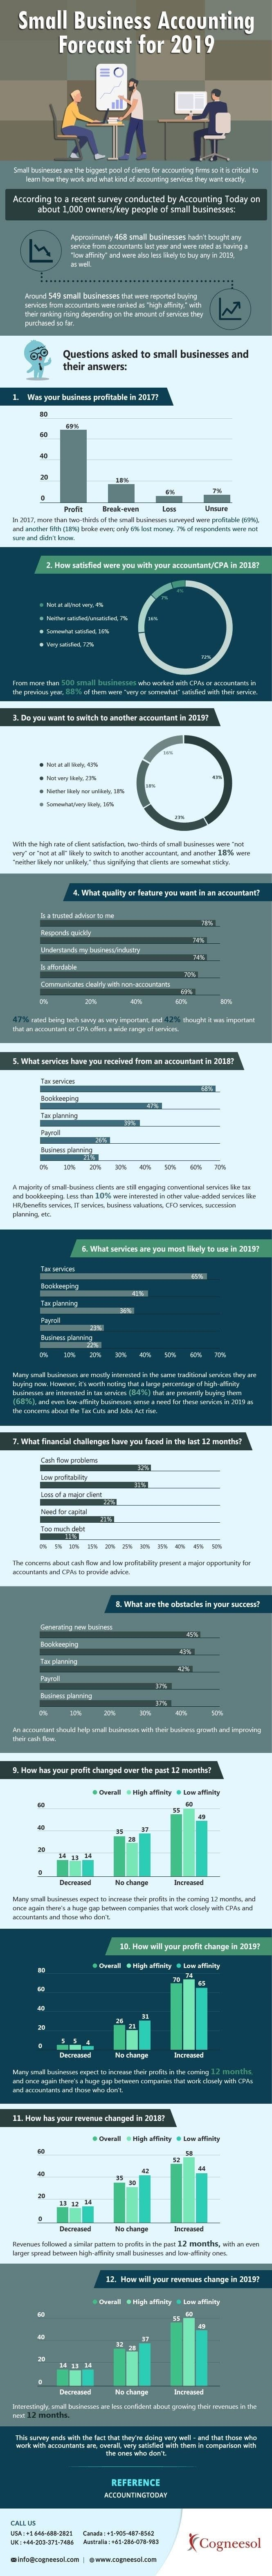 2019 Small Business Accounts forecast #infographic